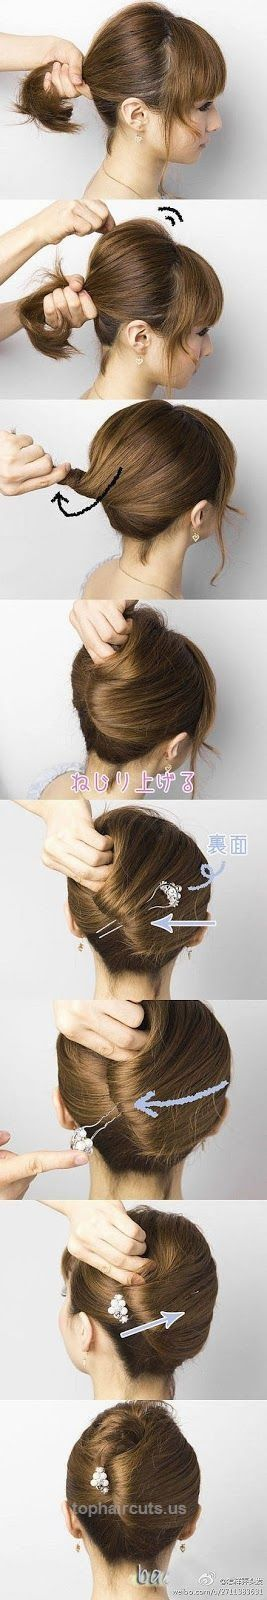 Updos for Short Hair: 7 Handpicked Short Hair Updo Tutorials  tutorial on updo for short hair  www.hairstylo.com…  http://www.tophaircuts.us/2017/06/13/updos-for-short-hair-7-handpicked-short-hair-updo-tutorials/